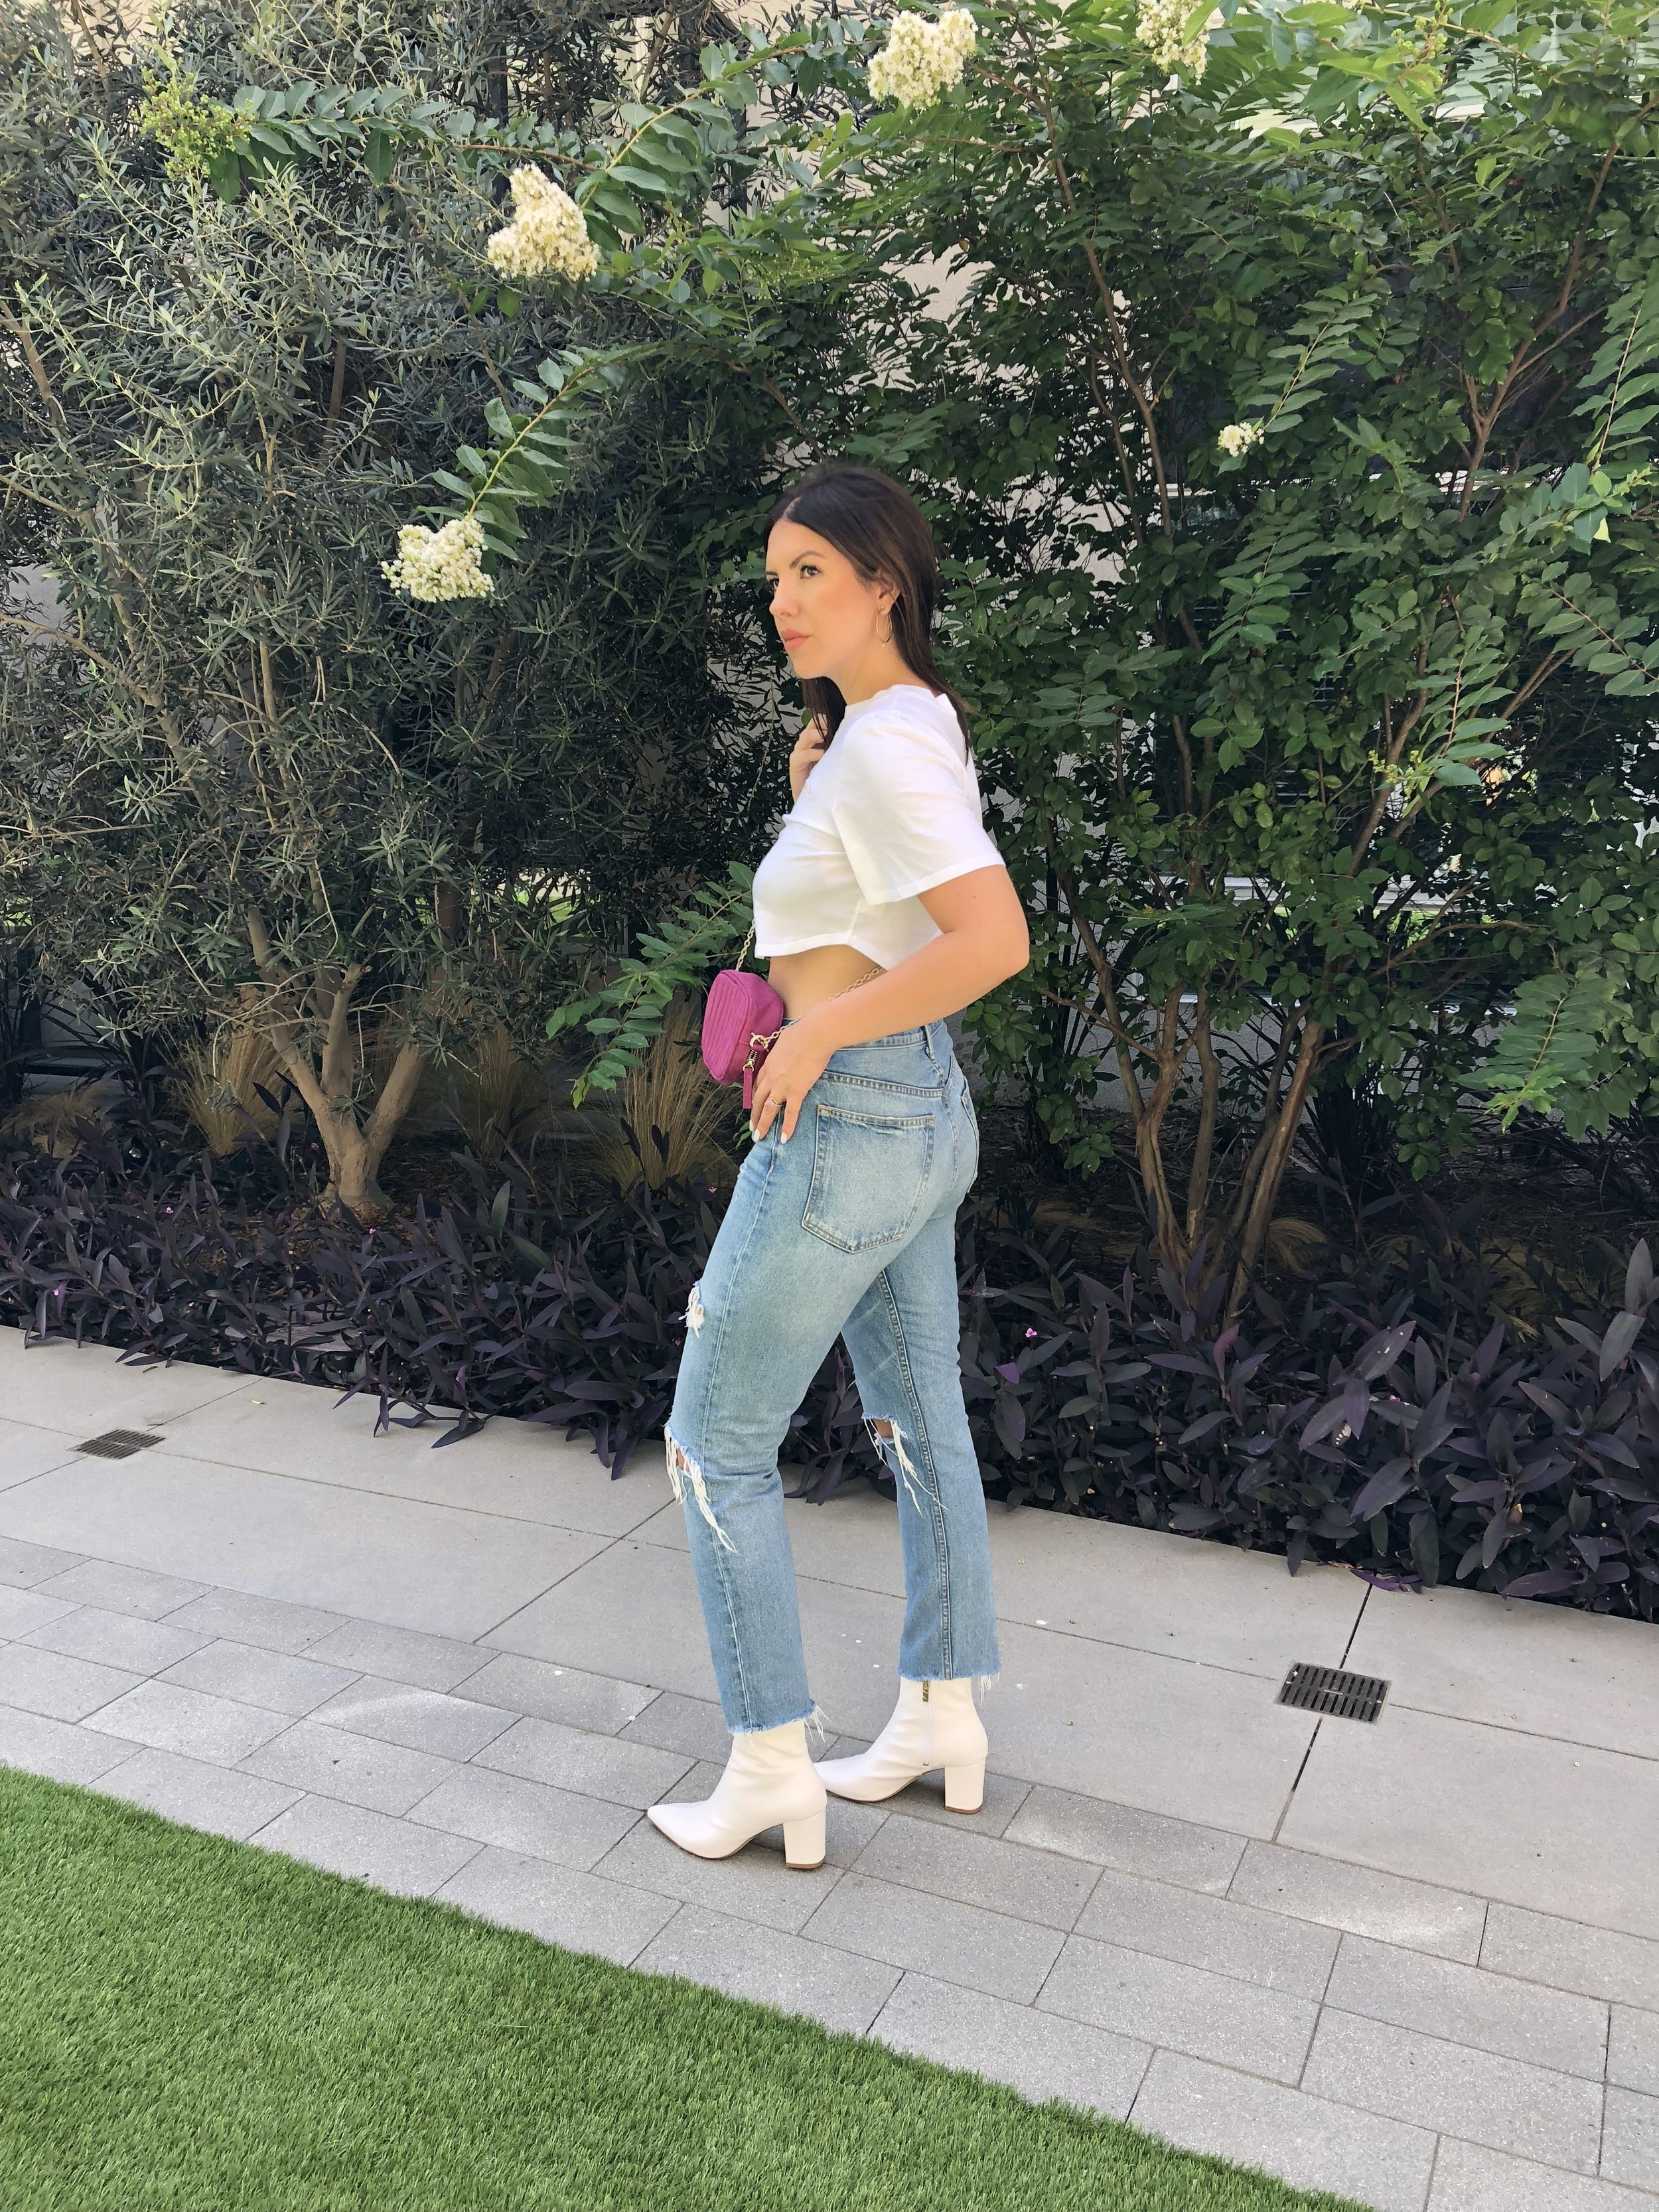 Day 3 - Brunch Jeans